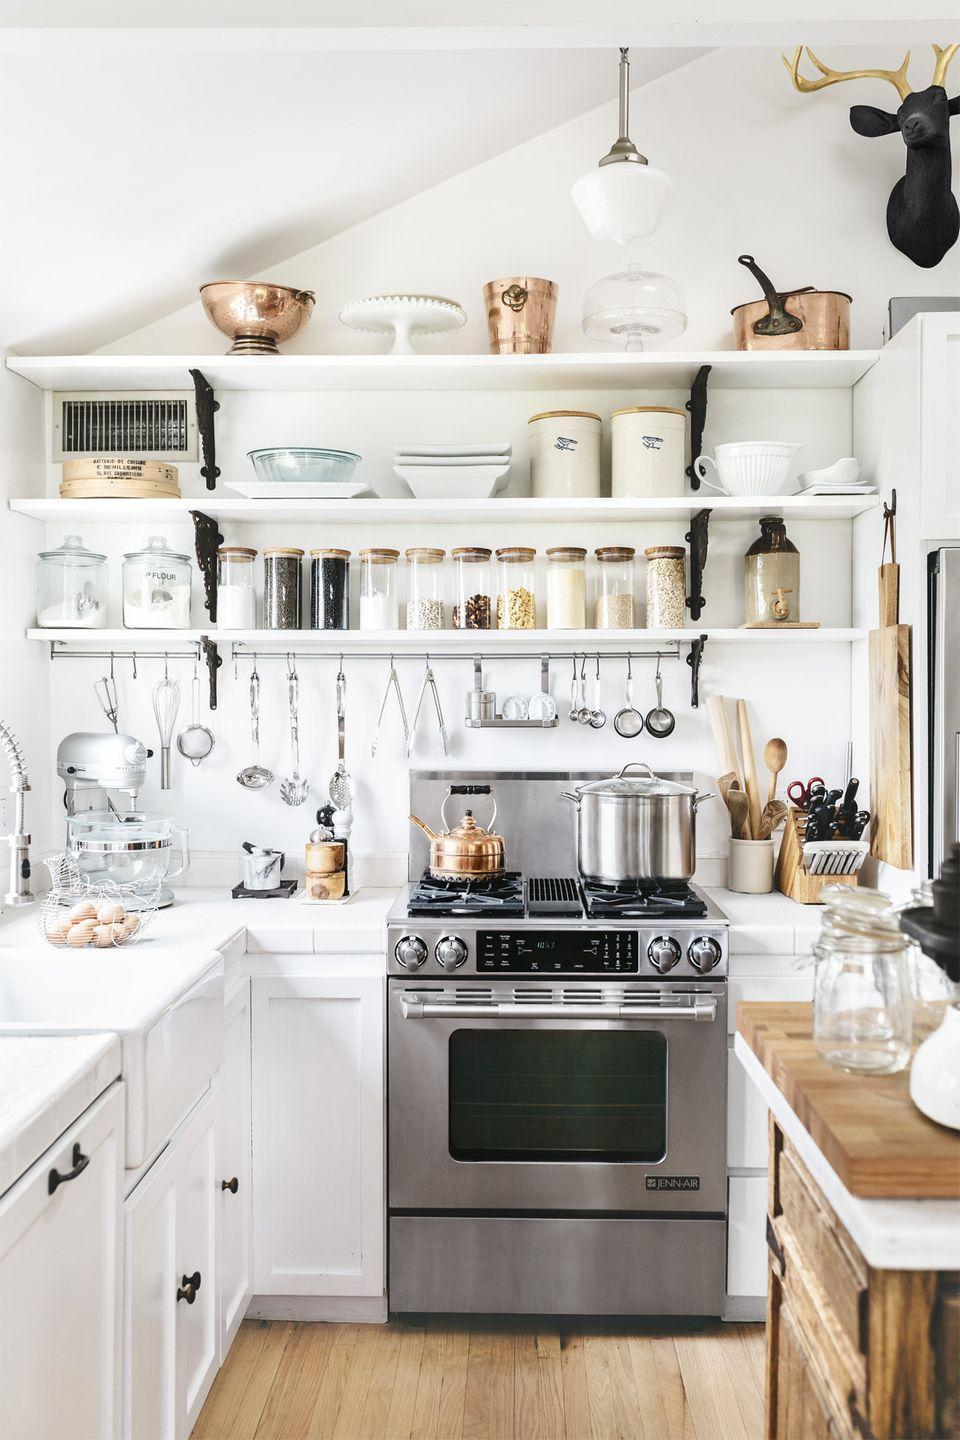 """<p>This economical alternative to upper cabinetry keeps everything within sight and reach. Plus, <a href=""""https://www.countryliving.com/home-design/decorating-ideas/g4705/farmhouse-staples/"""" rel=""""nofollow noopener"""" target=""""_blank"""" data-ylk=""""slk:the farmhouse staple"""" class=""""link rapid-noclick-resp"""">the farmhouse staple</a> provides the perfect excuse to buy beautiful kitchen items in <a href=""""https://www.amazon.com/s/ref=nb_sb_ss_c_1_17?url=search-alias%3Daps&field-keywords=rose+gold+kitchen+accessories&tag=syn-yahoo-20&ascsubtag=%5Bartid%7C10050.g.1293%5Bsrc%7Cyahoo-us"""" rel=""""nofollow noopener"""" target=""""_blank"""" data-ylk=""""slk:rose gold"""" class=""""link rapid-noclick-resp"""">rose gold</a> or other stunning materials and colors.</p>"""